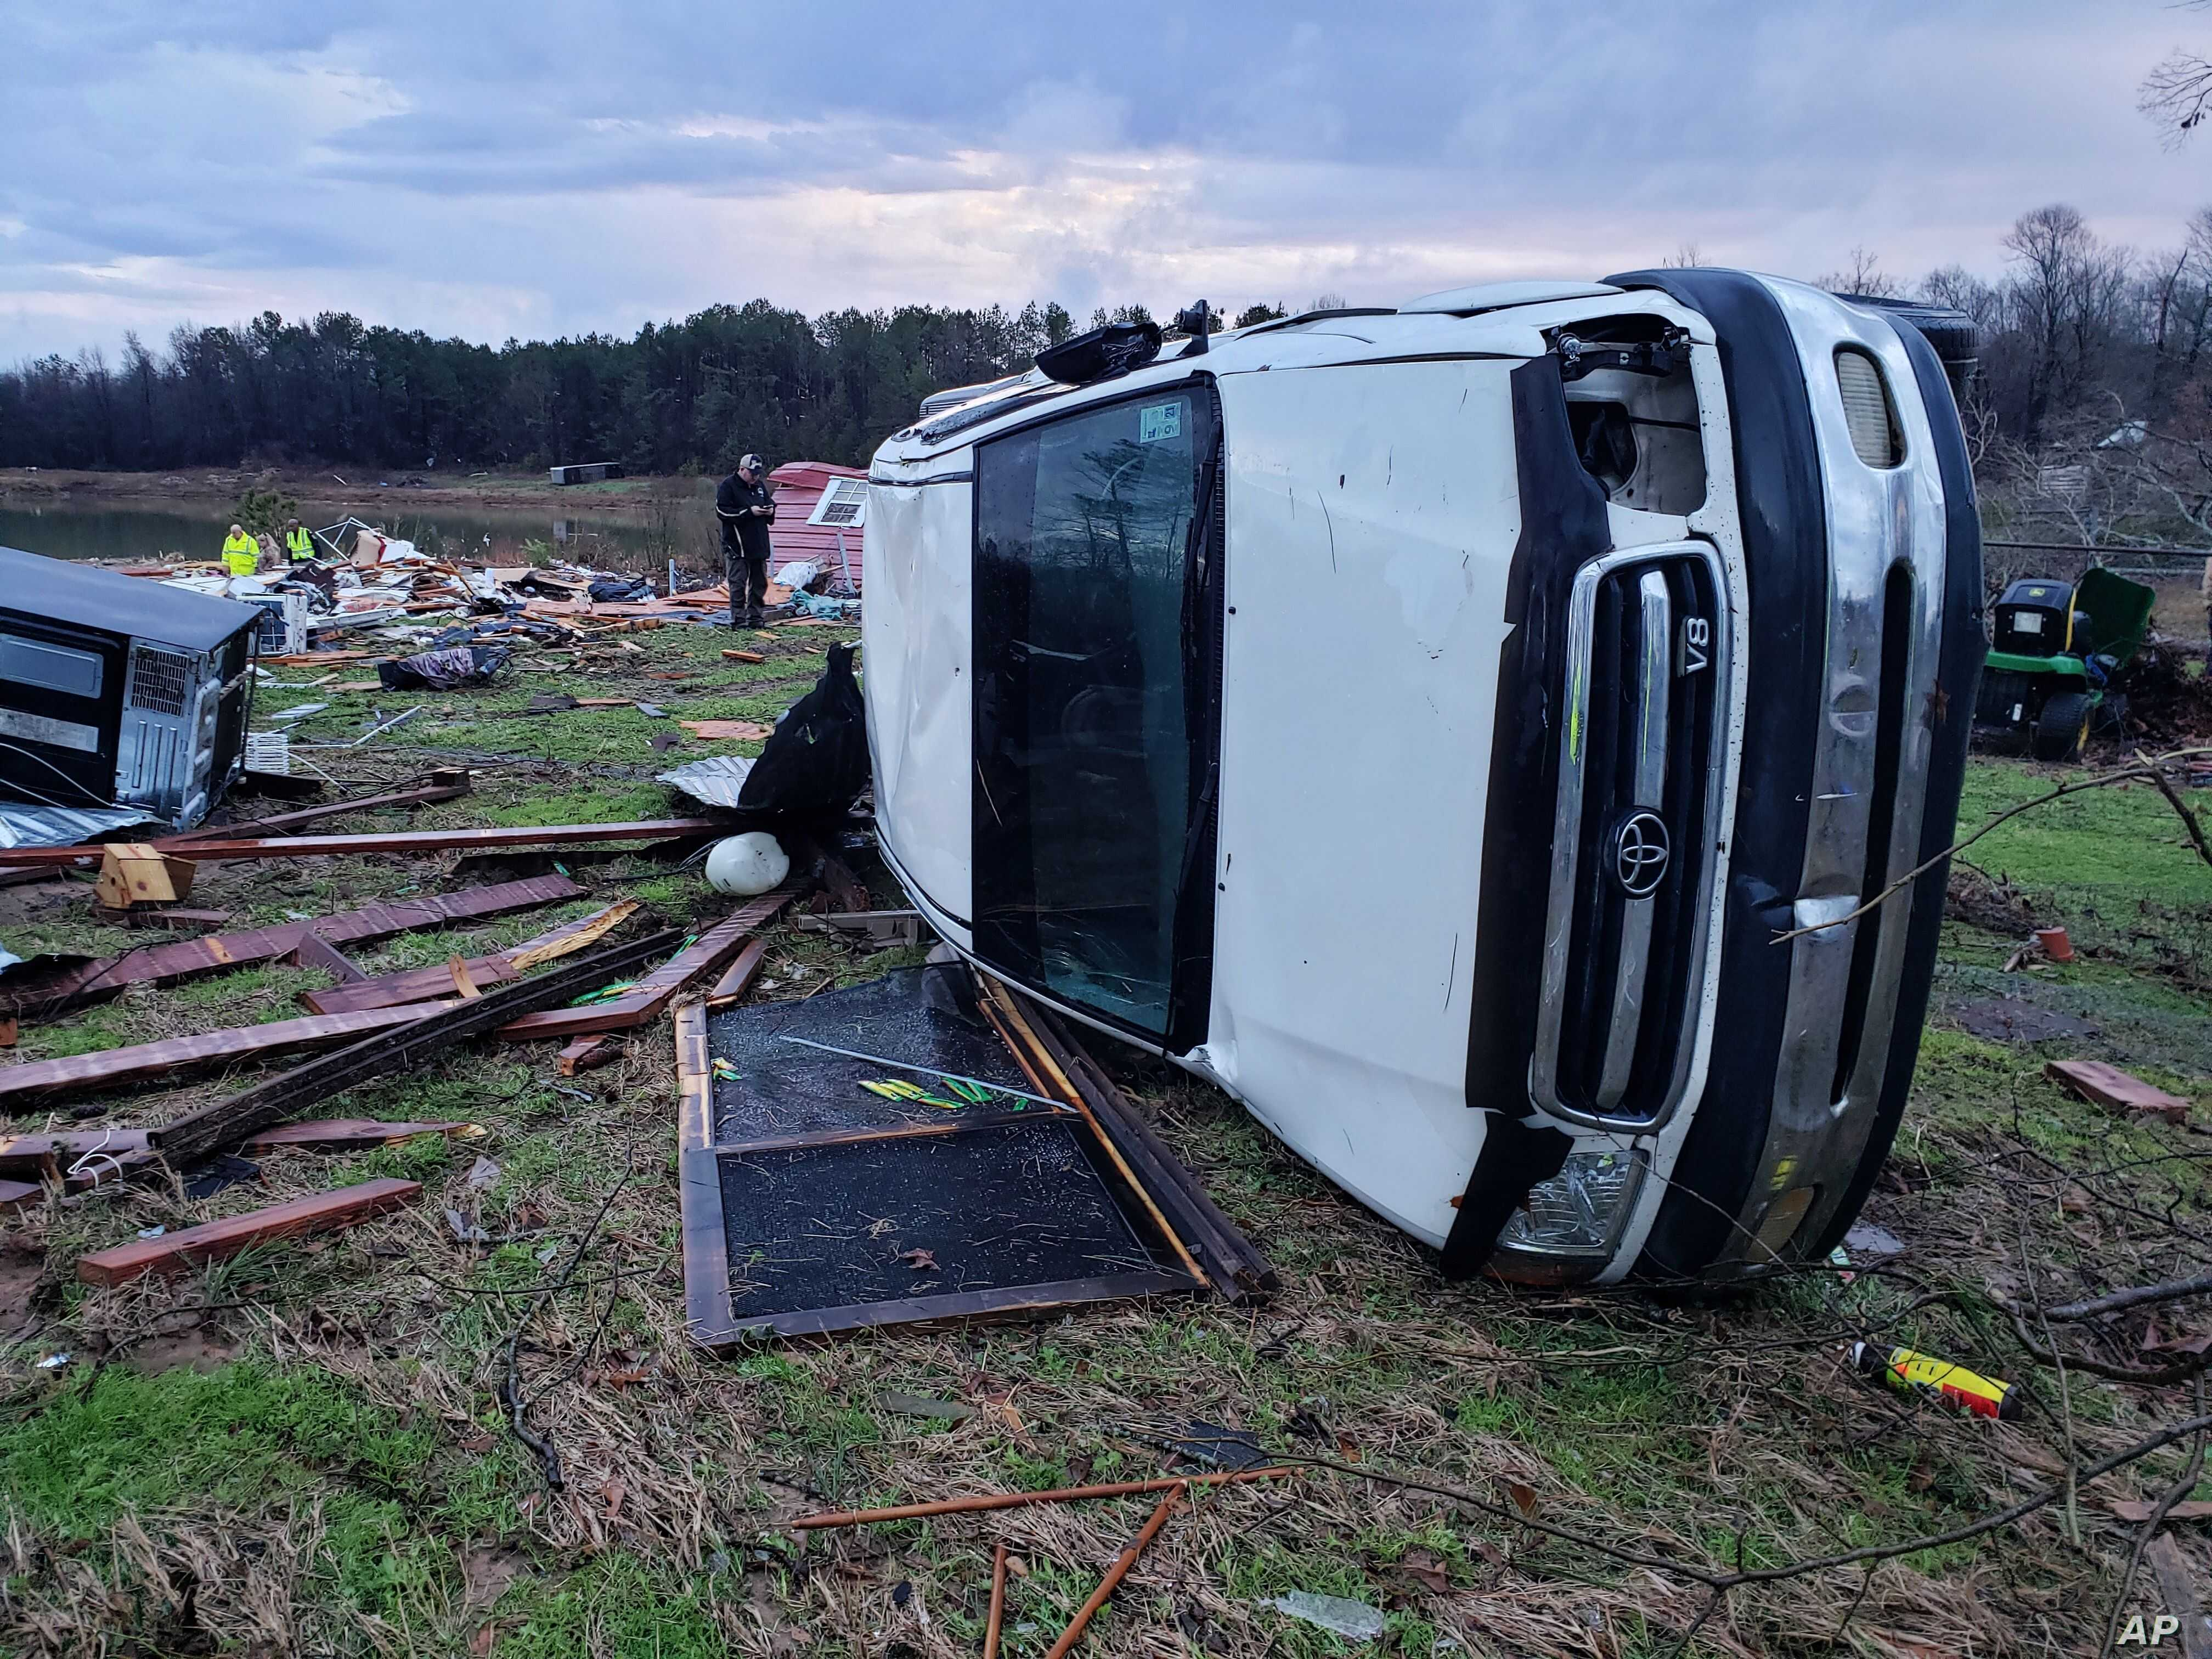 Storms sweep southern U.S., Midwest as death toll rises to 11